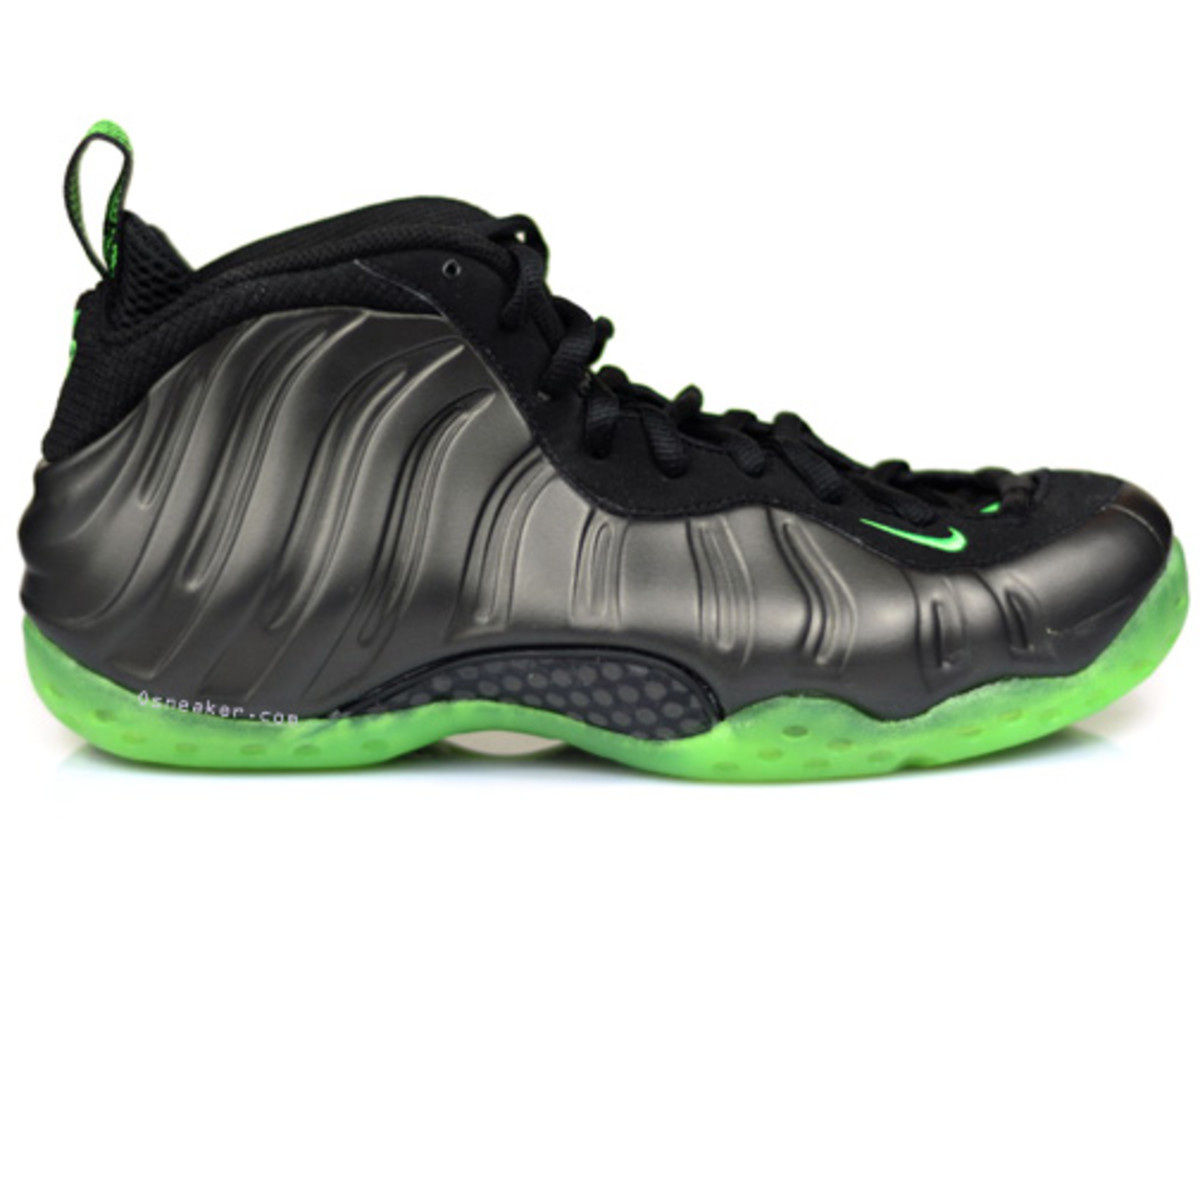 newest 86aab 21271 Nike Air Foamposite One - Black Electric Green   Release Date - Freshness  Mag